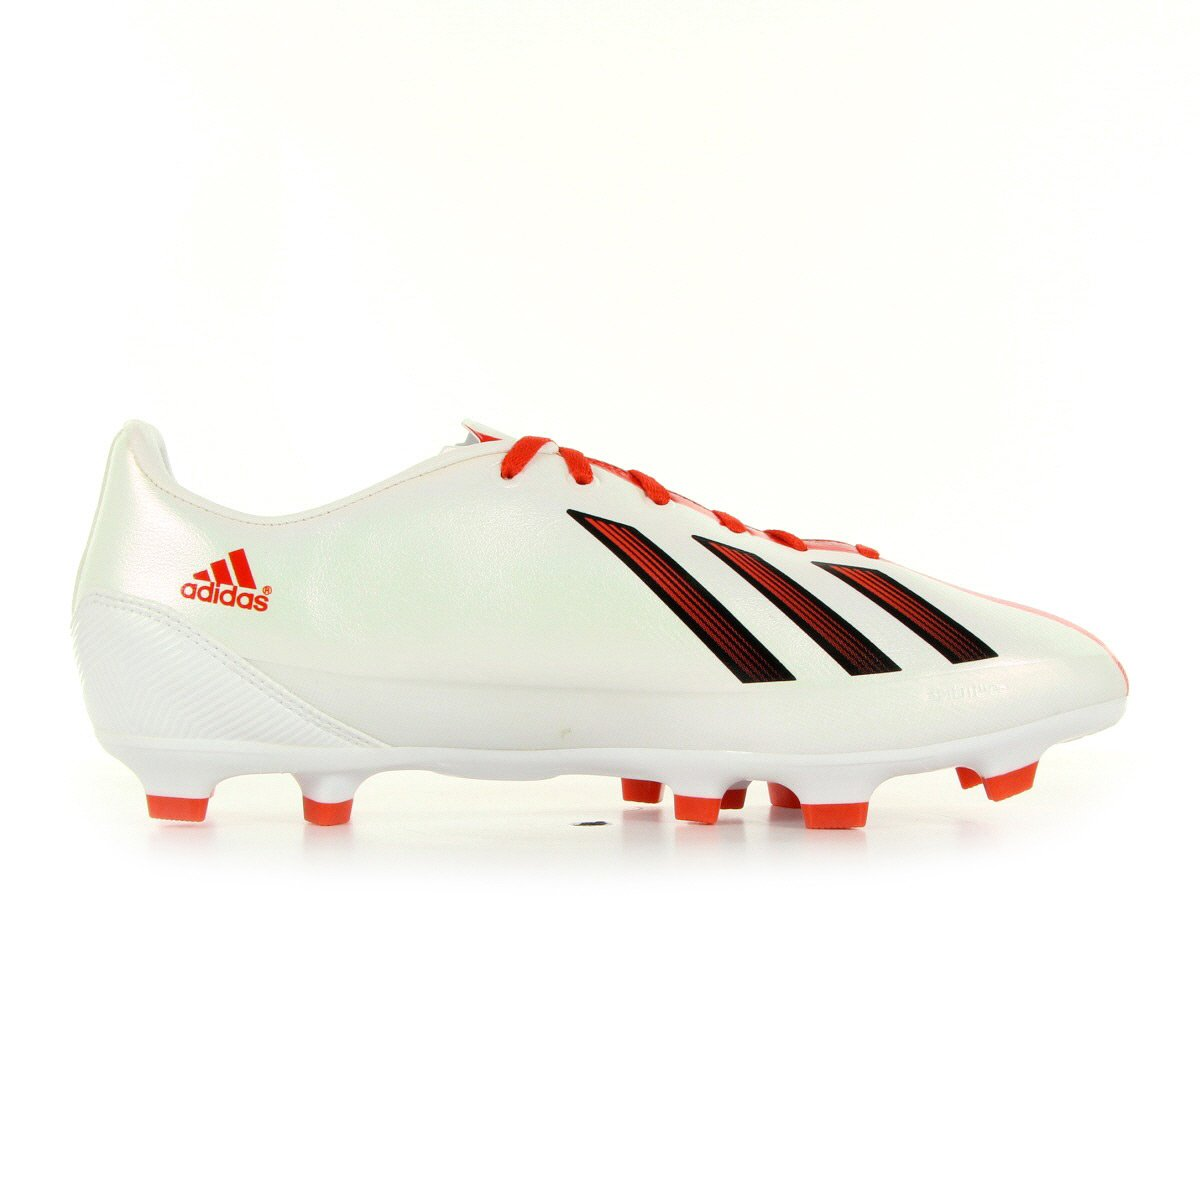 timeless design 70cfb fdbff ADIDAS F30 TRX FG G65387 MENS SOCCER SNEAKERS 7, 5 UK Amazon.co.uk Shoes   Bags